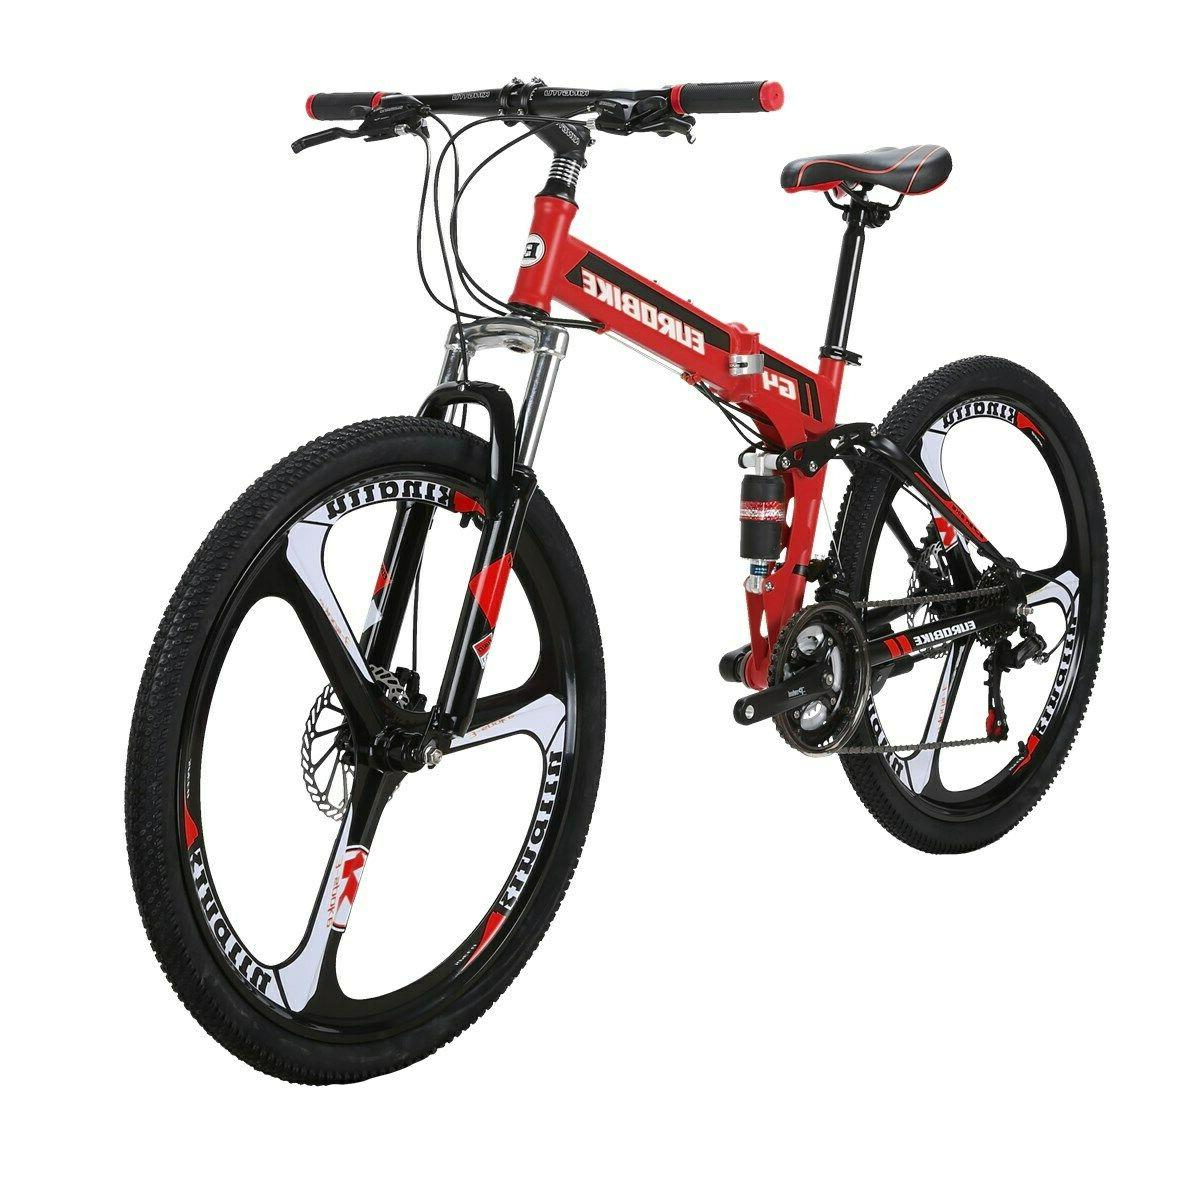 Mountain 26 3 Spoke Wheels Suspension Speed